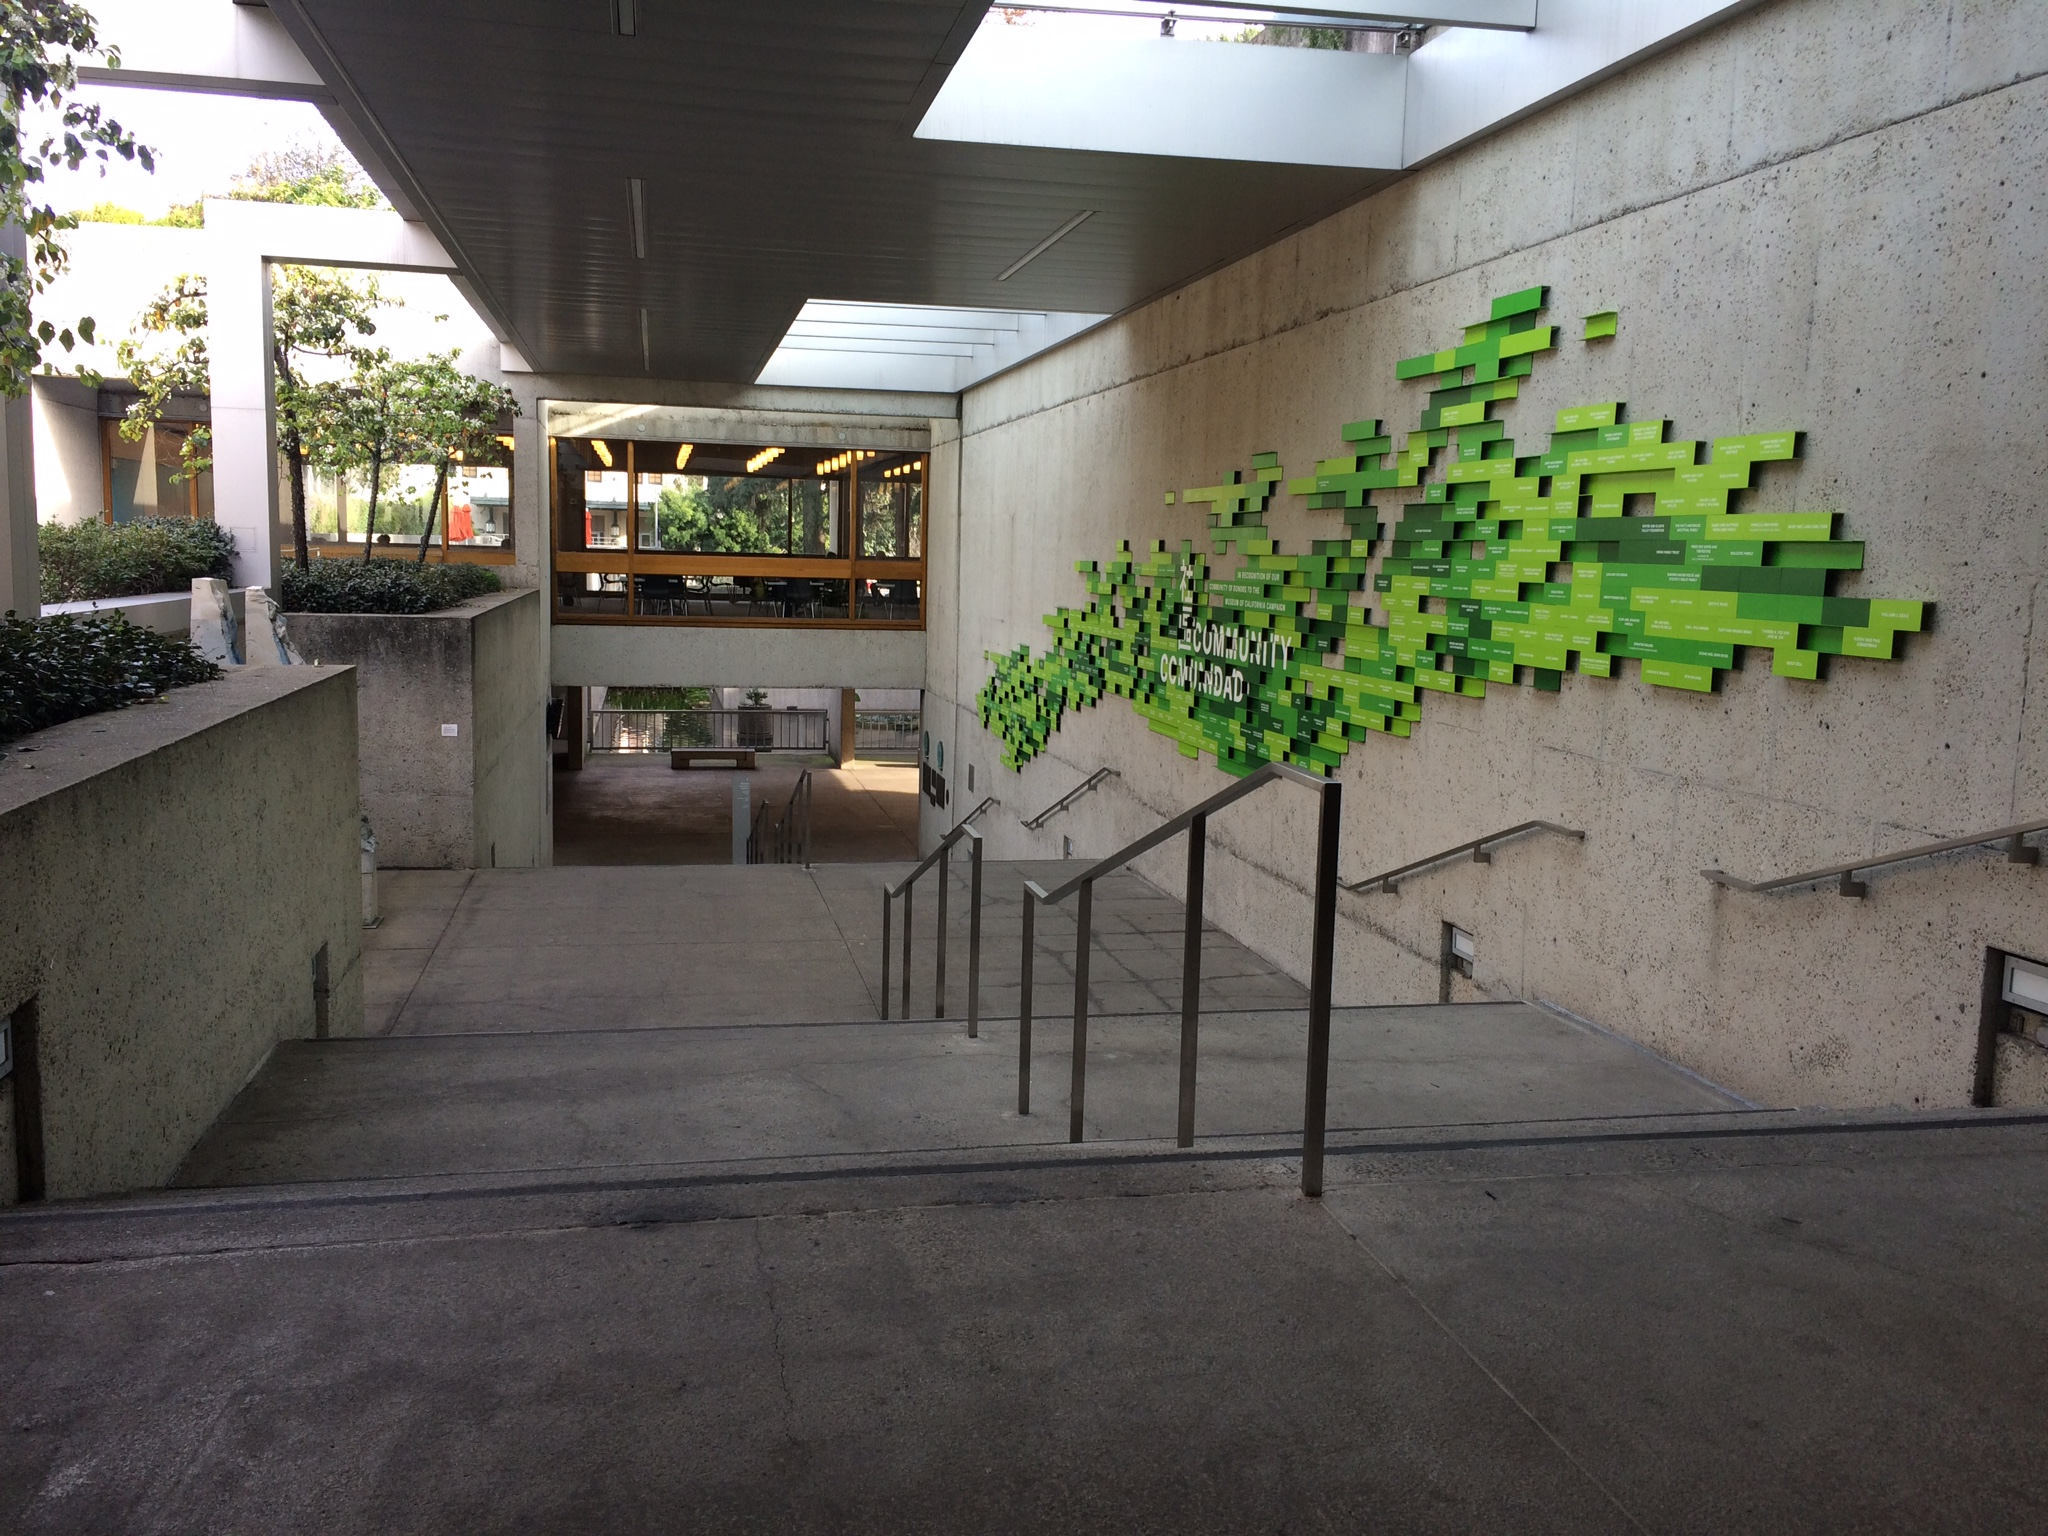 Oakland Museum, venue for Kiva event on March 16!